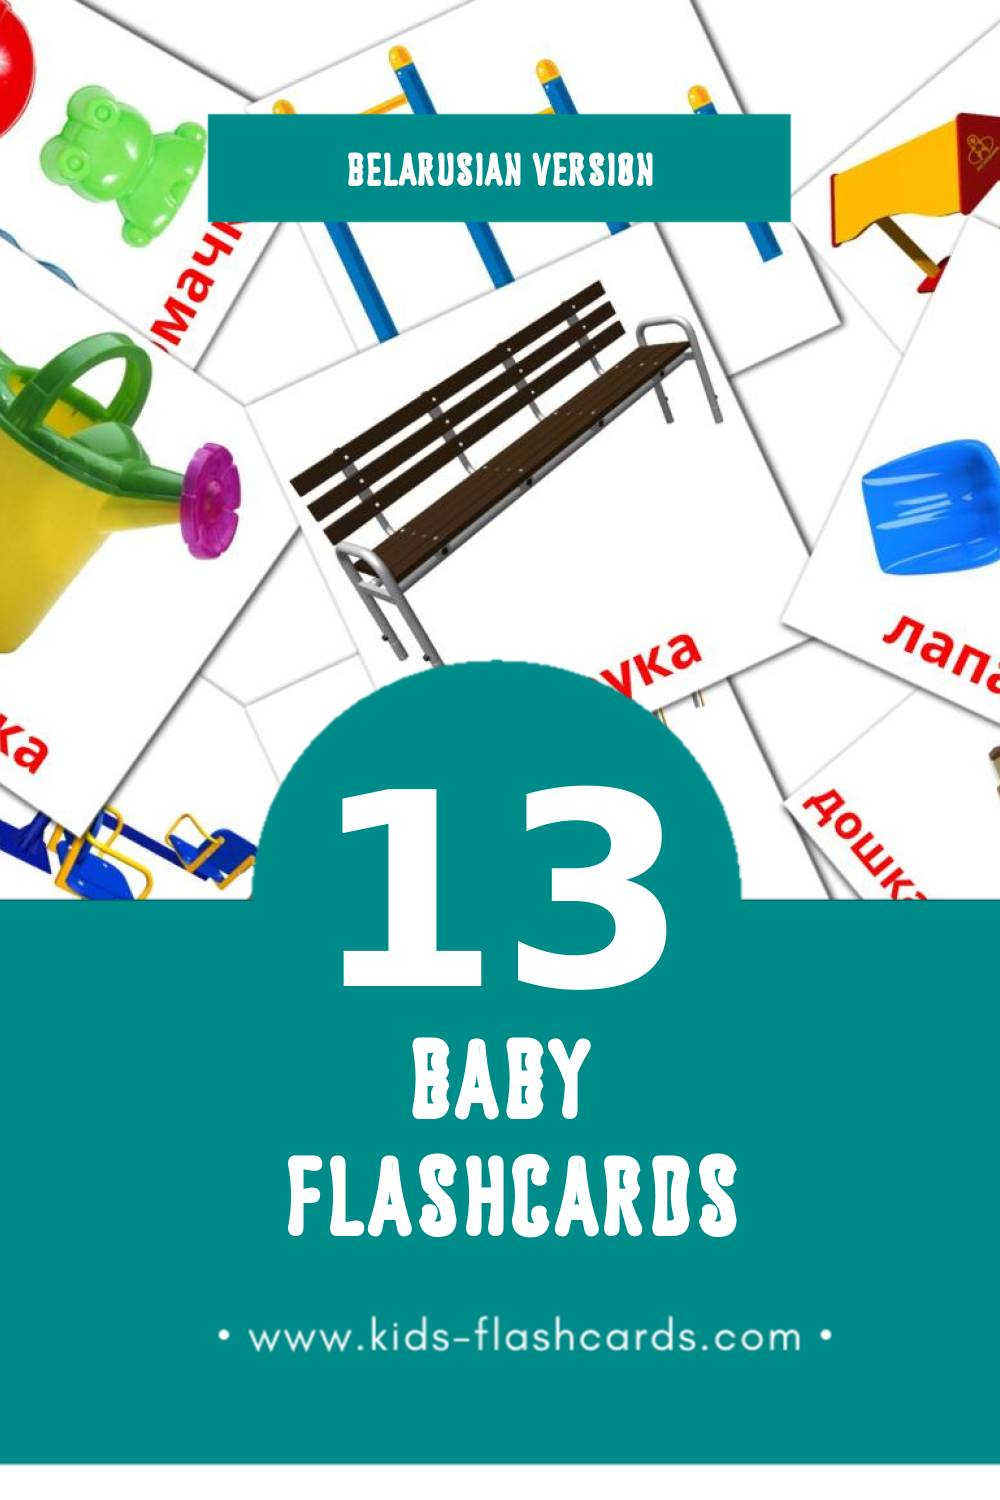 Visual Тата Лис Flashcards for Toddlers (13 cards in Belarusian)